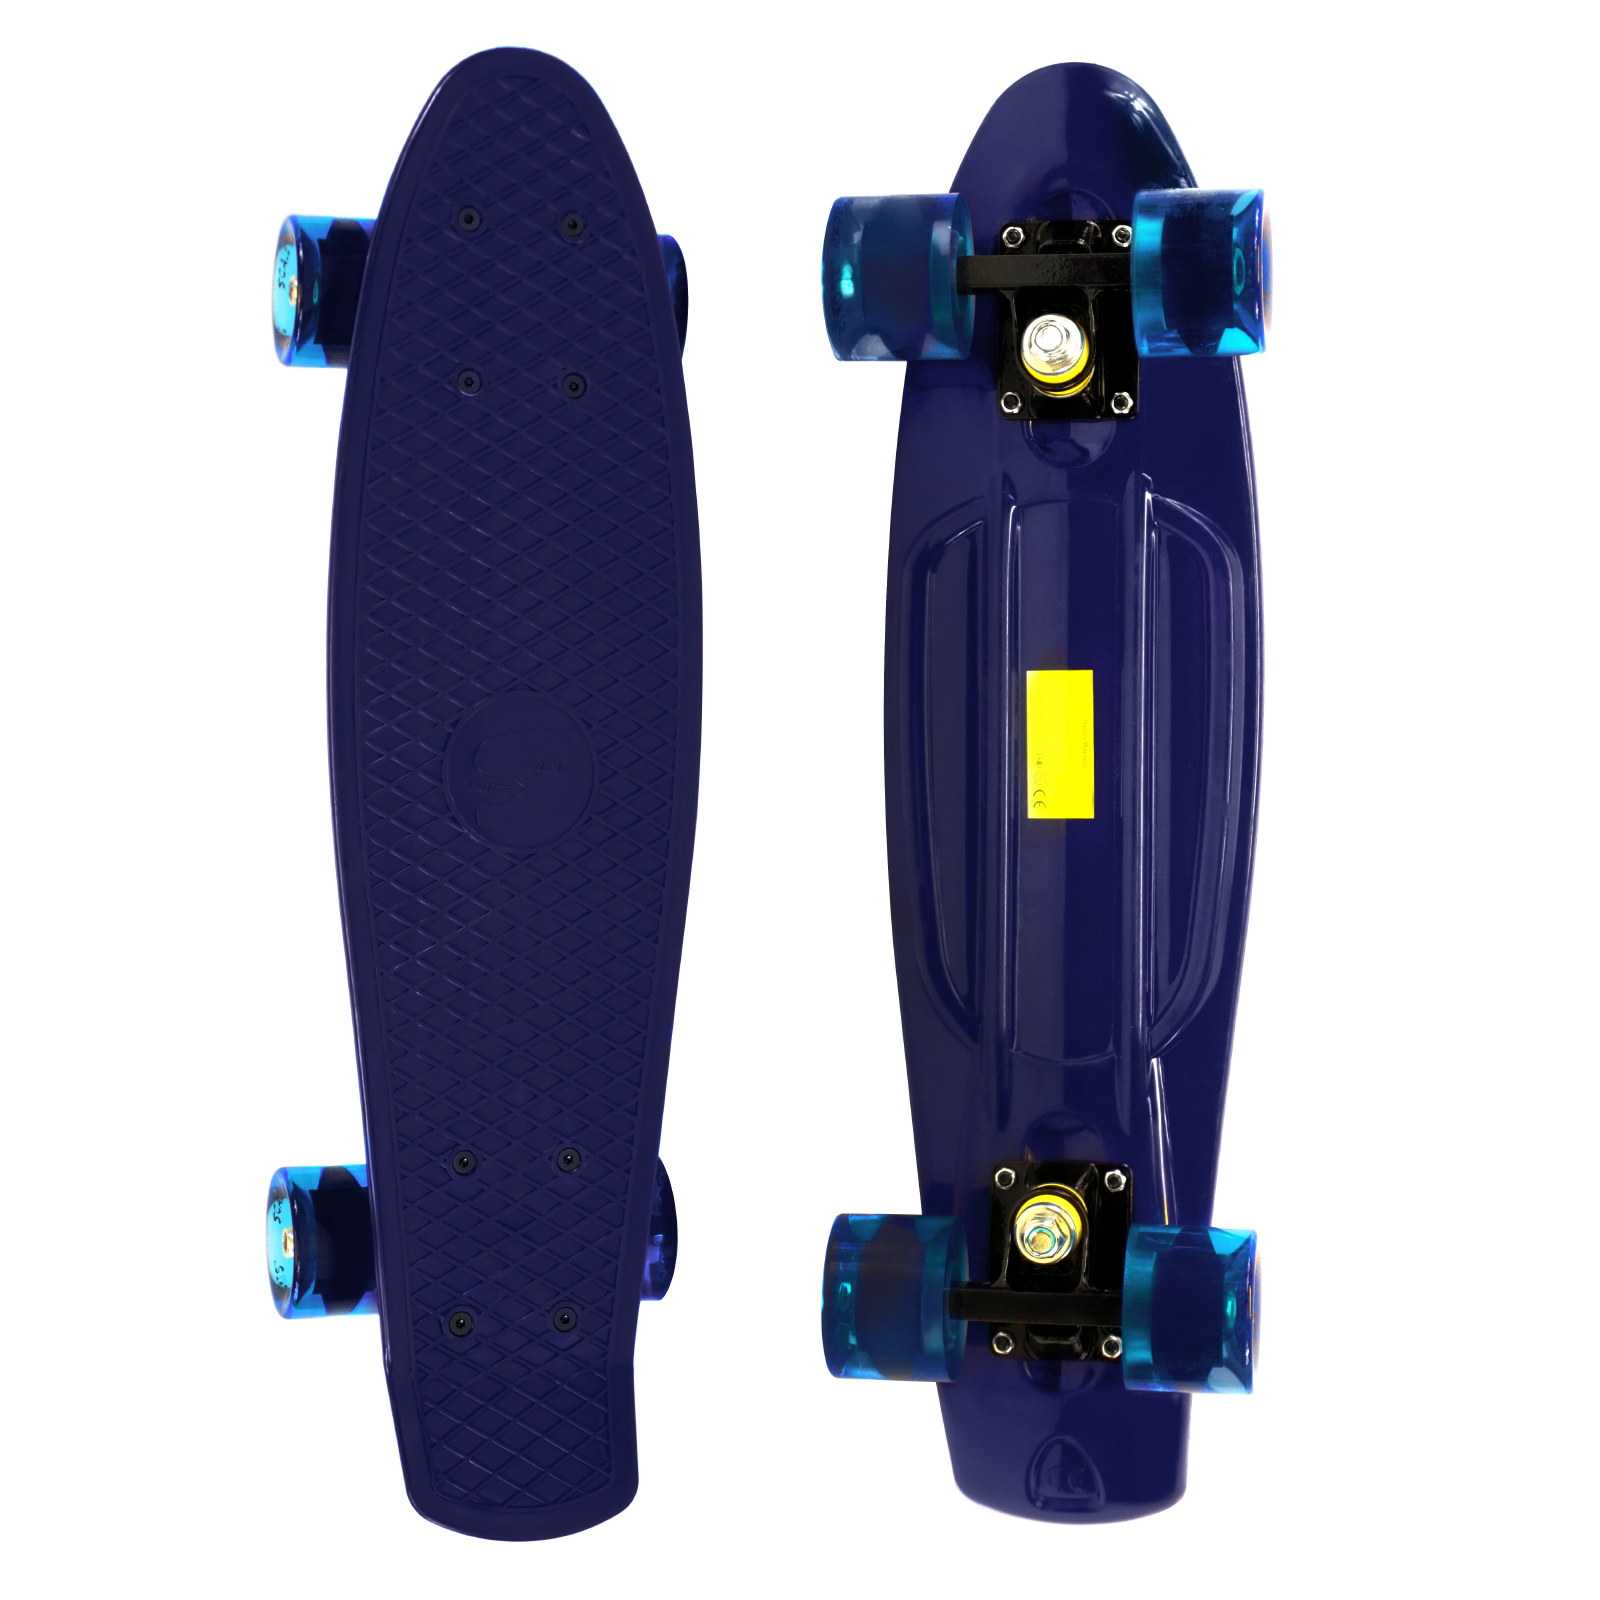 Complete 22 inch Skateboard Plastic Mini Retro Style Cruiser, Black Gold by Scale Sports